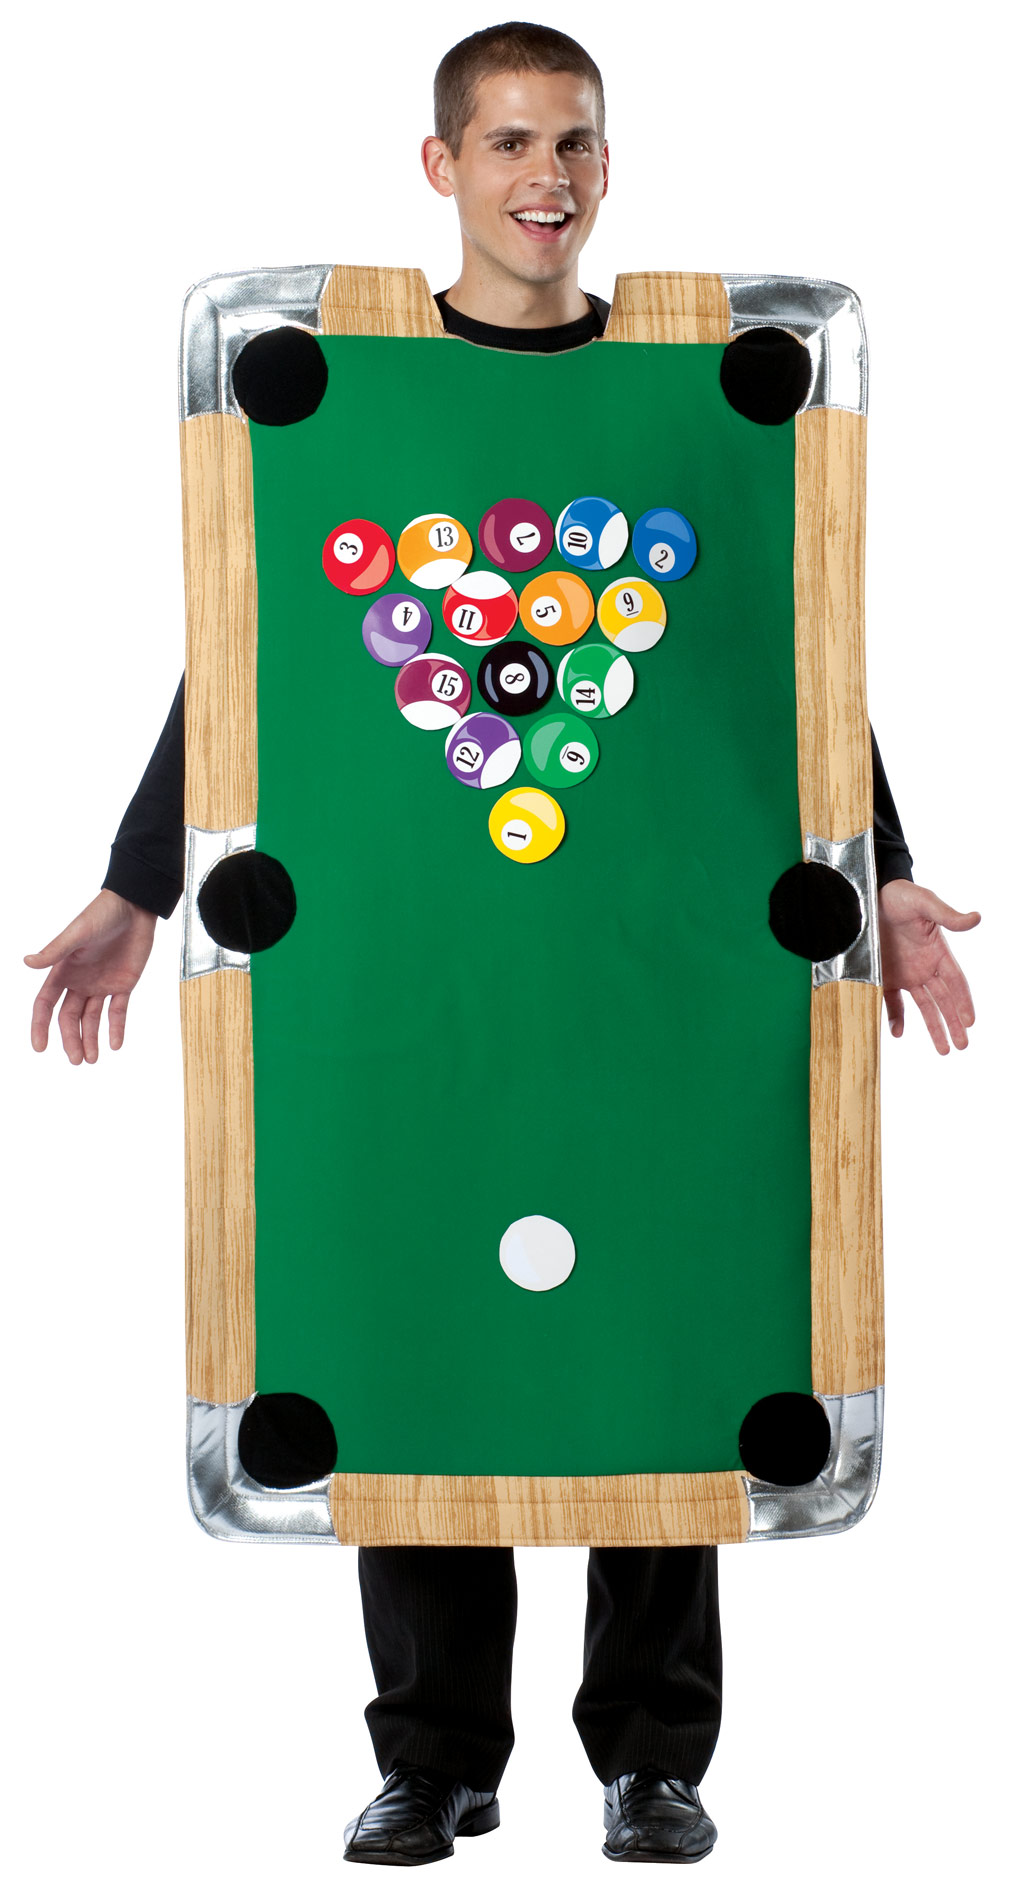 d guisement table de billard d guisement humoristique adulte costume carnaval. Black Bedroom Furniture Sets. Home Design Ideas